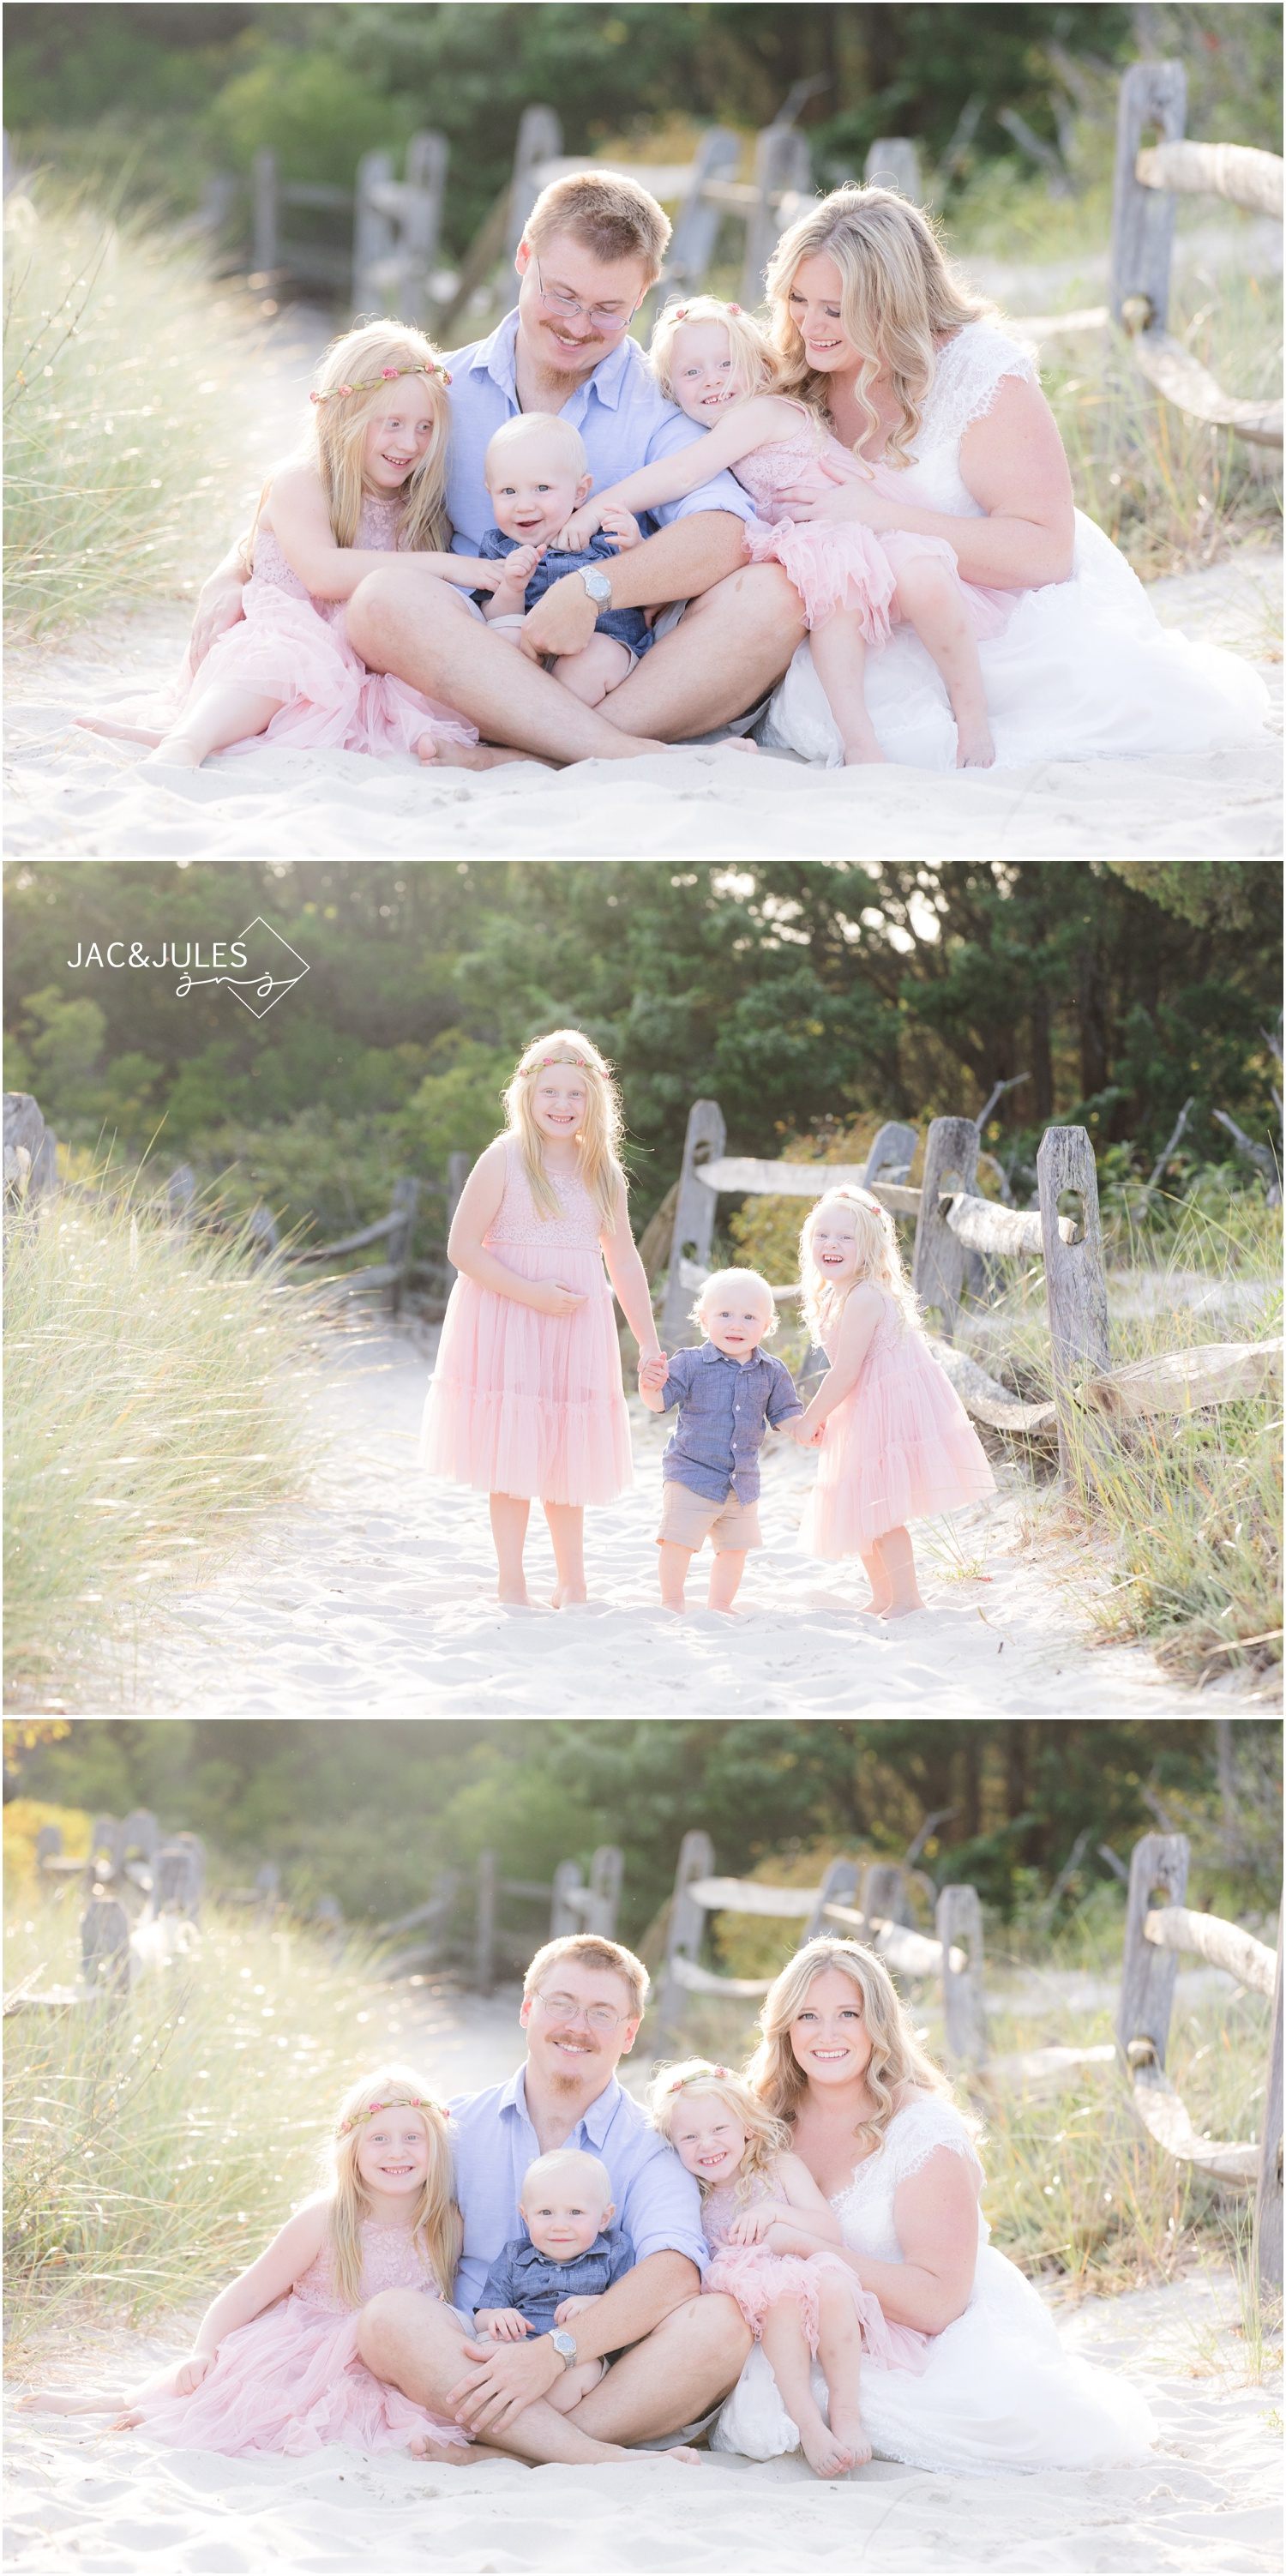 Sweet moments from a Family photo shoot in Seaside Park, nj.